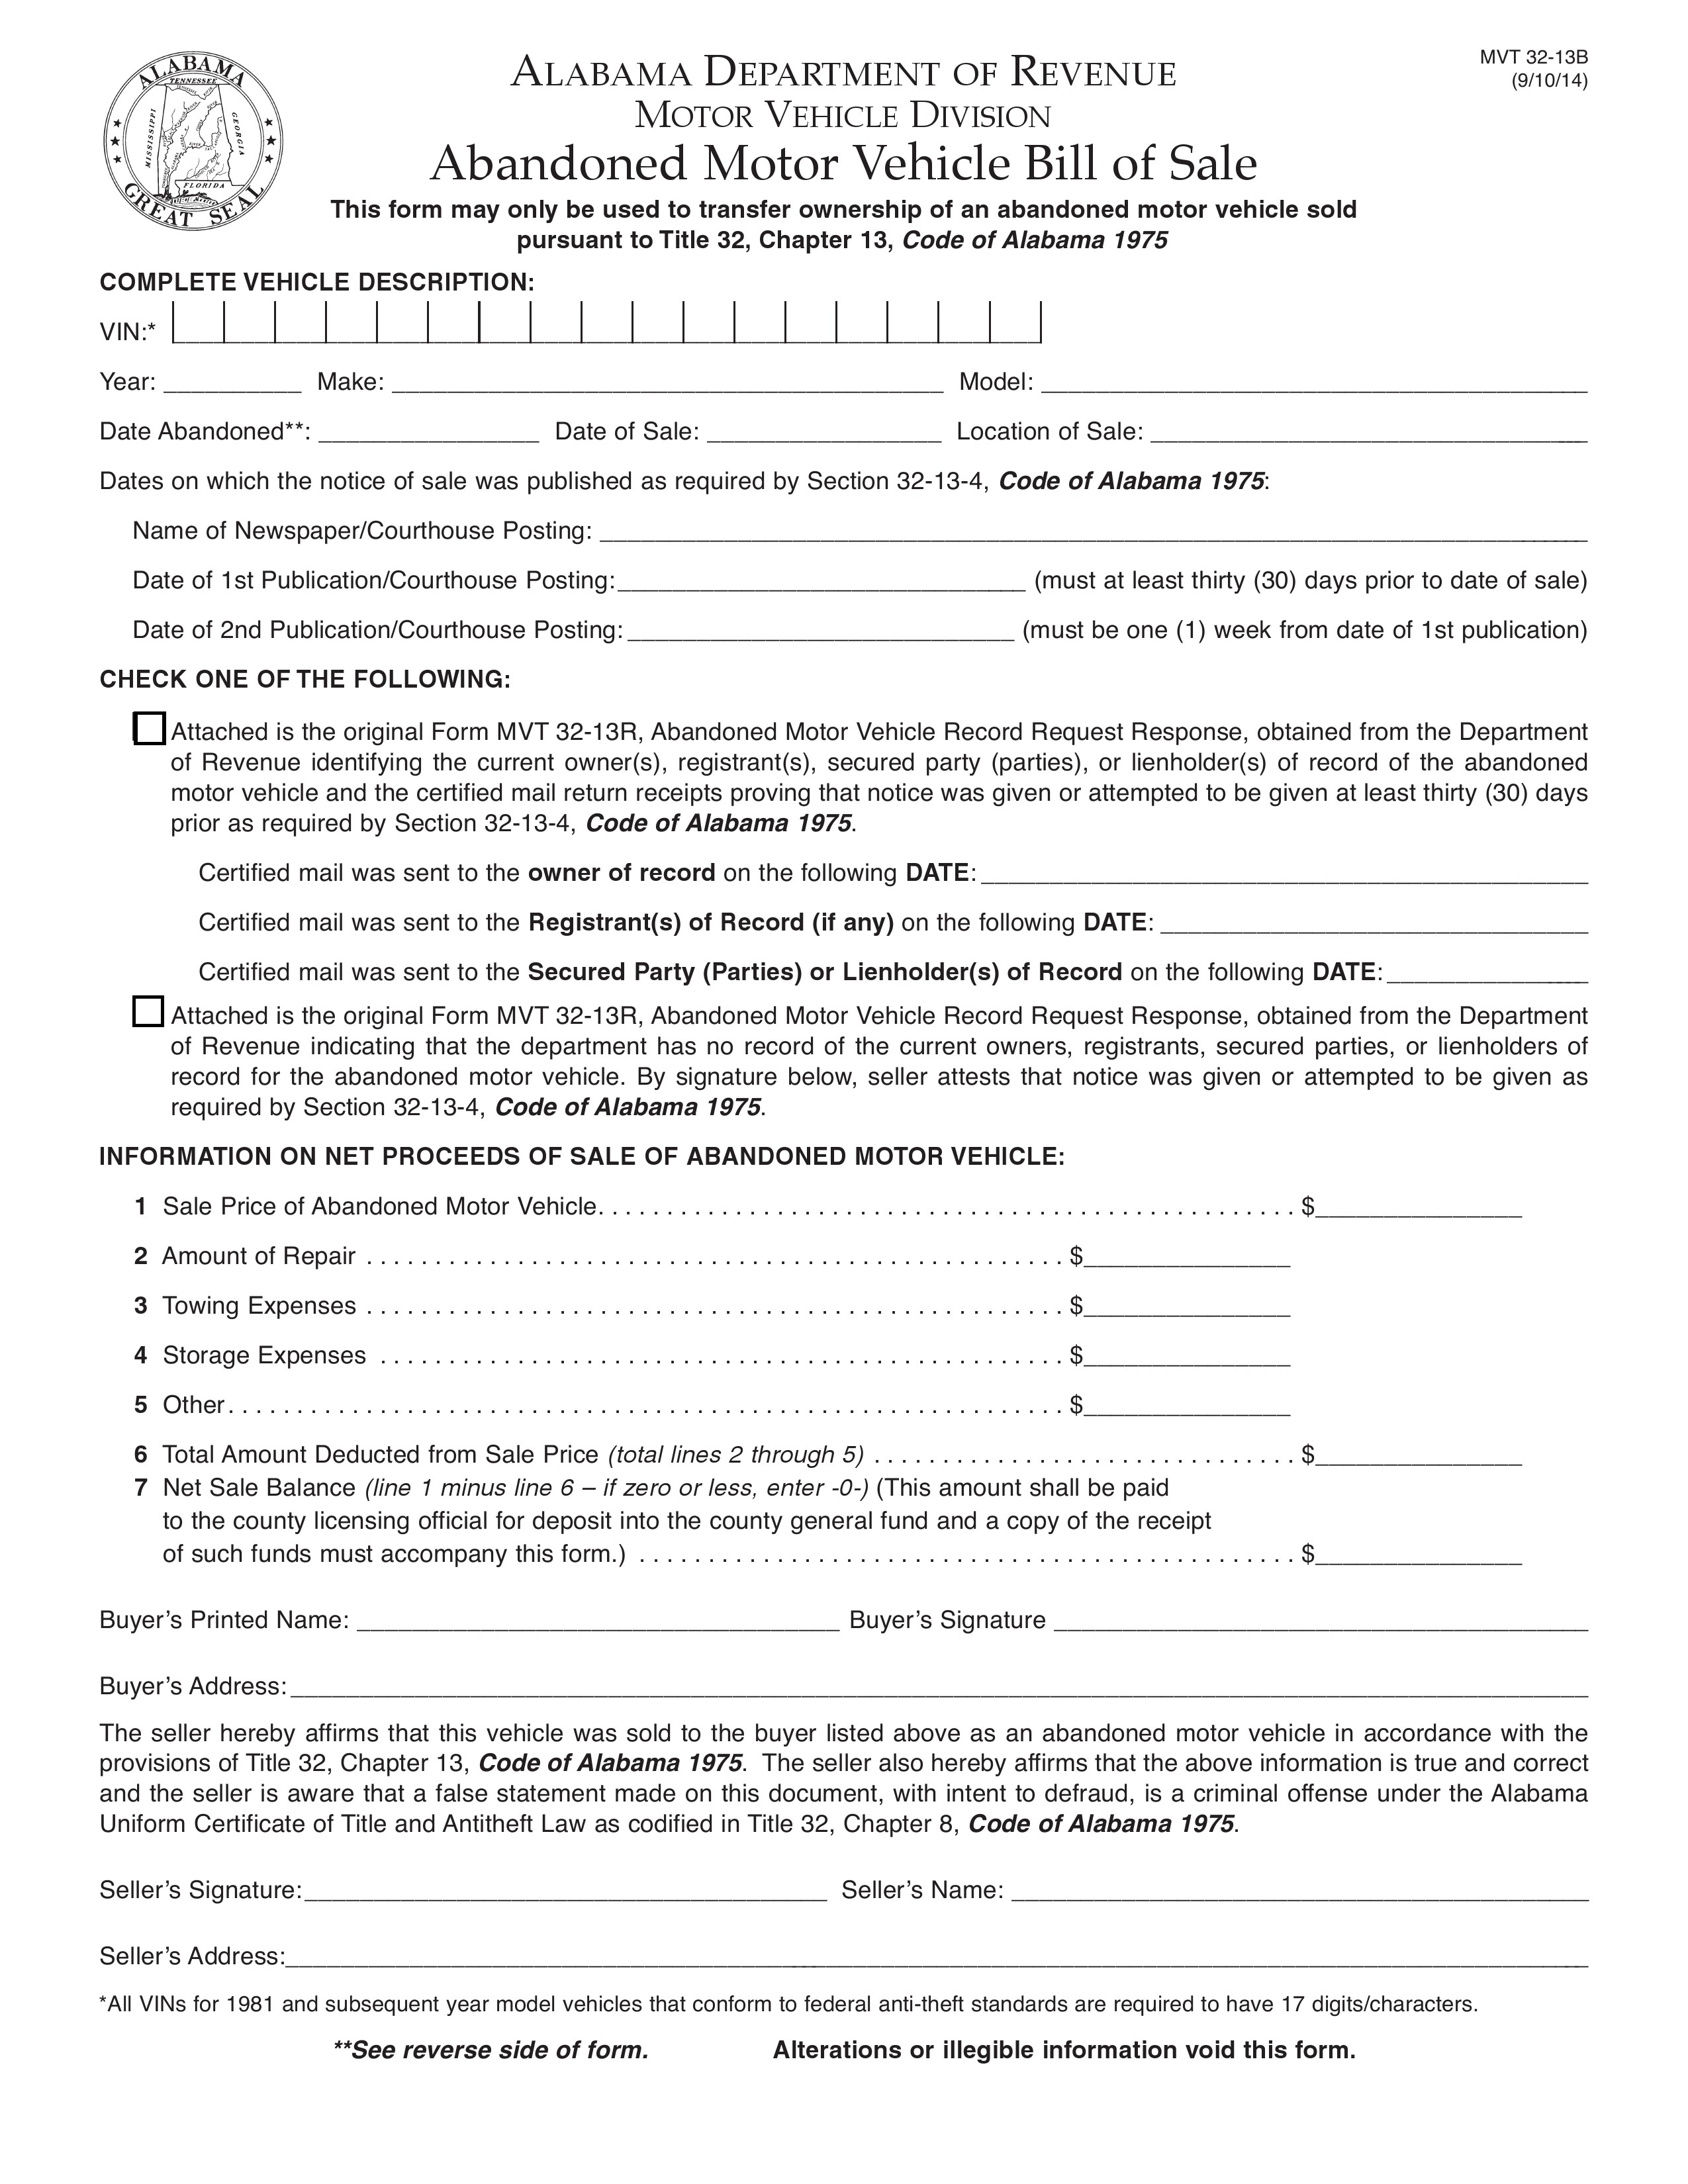 Free alabama abandoned vehicle bill of sale form pdf docx for Free motor vehicle bill of sale